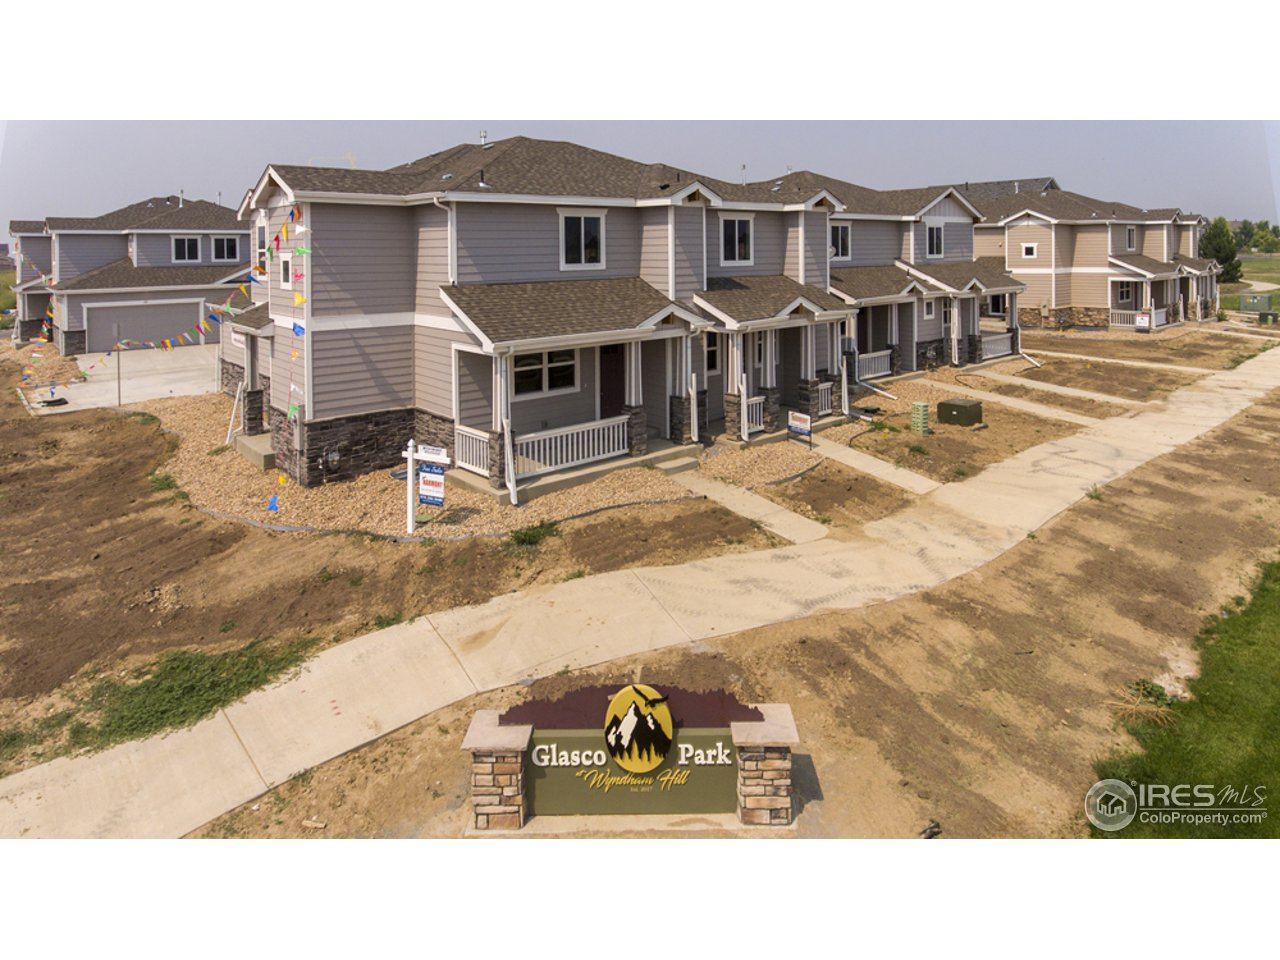 Glasco Park Townhomes are in the Wyndham Hill development in Frederick, Colorado. Pool, Parks, Clubhouse, Walking Trails and Open Space provide a wonderful Colorado living experience. Maintenance-Free living at its finest.  Very convenient I-25 access, close to Denver, DIA, Boulder and the new Agilent and Amazon workplaces. New elementary school in community. High end finishes throughout.  Over $15k in upgrades standard.  Full basements and 2 car garages are included.  Basement finish available.